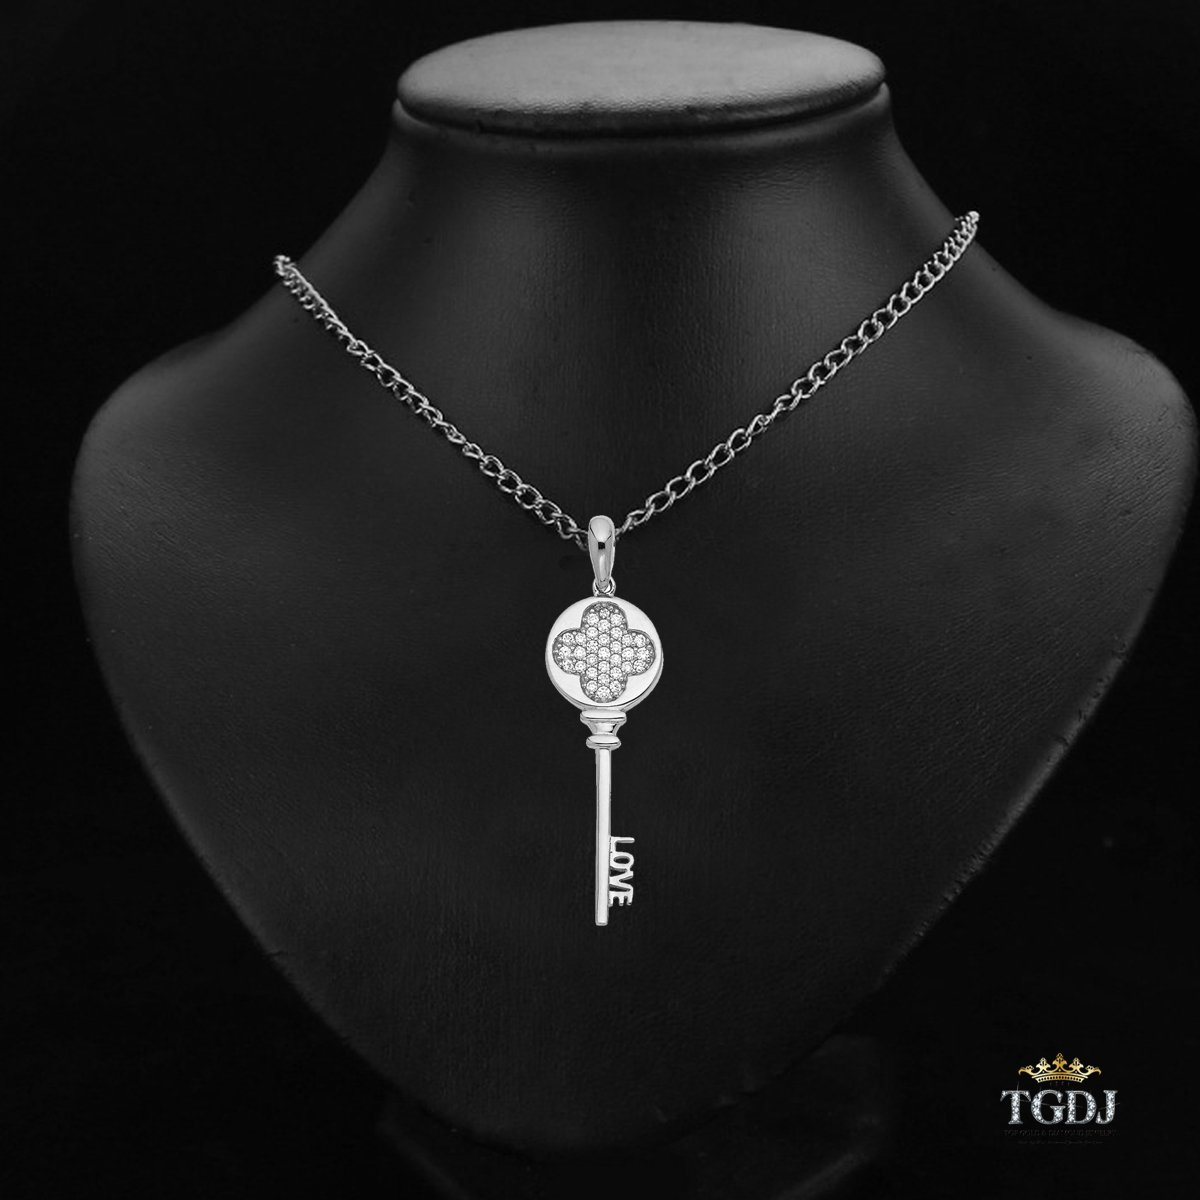 TGDJ 14k White Gold Love Key Pendant Height 32 MM Width 11 MM